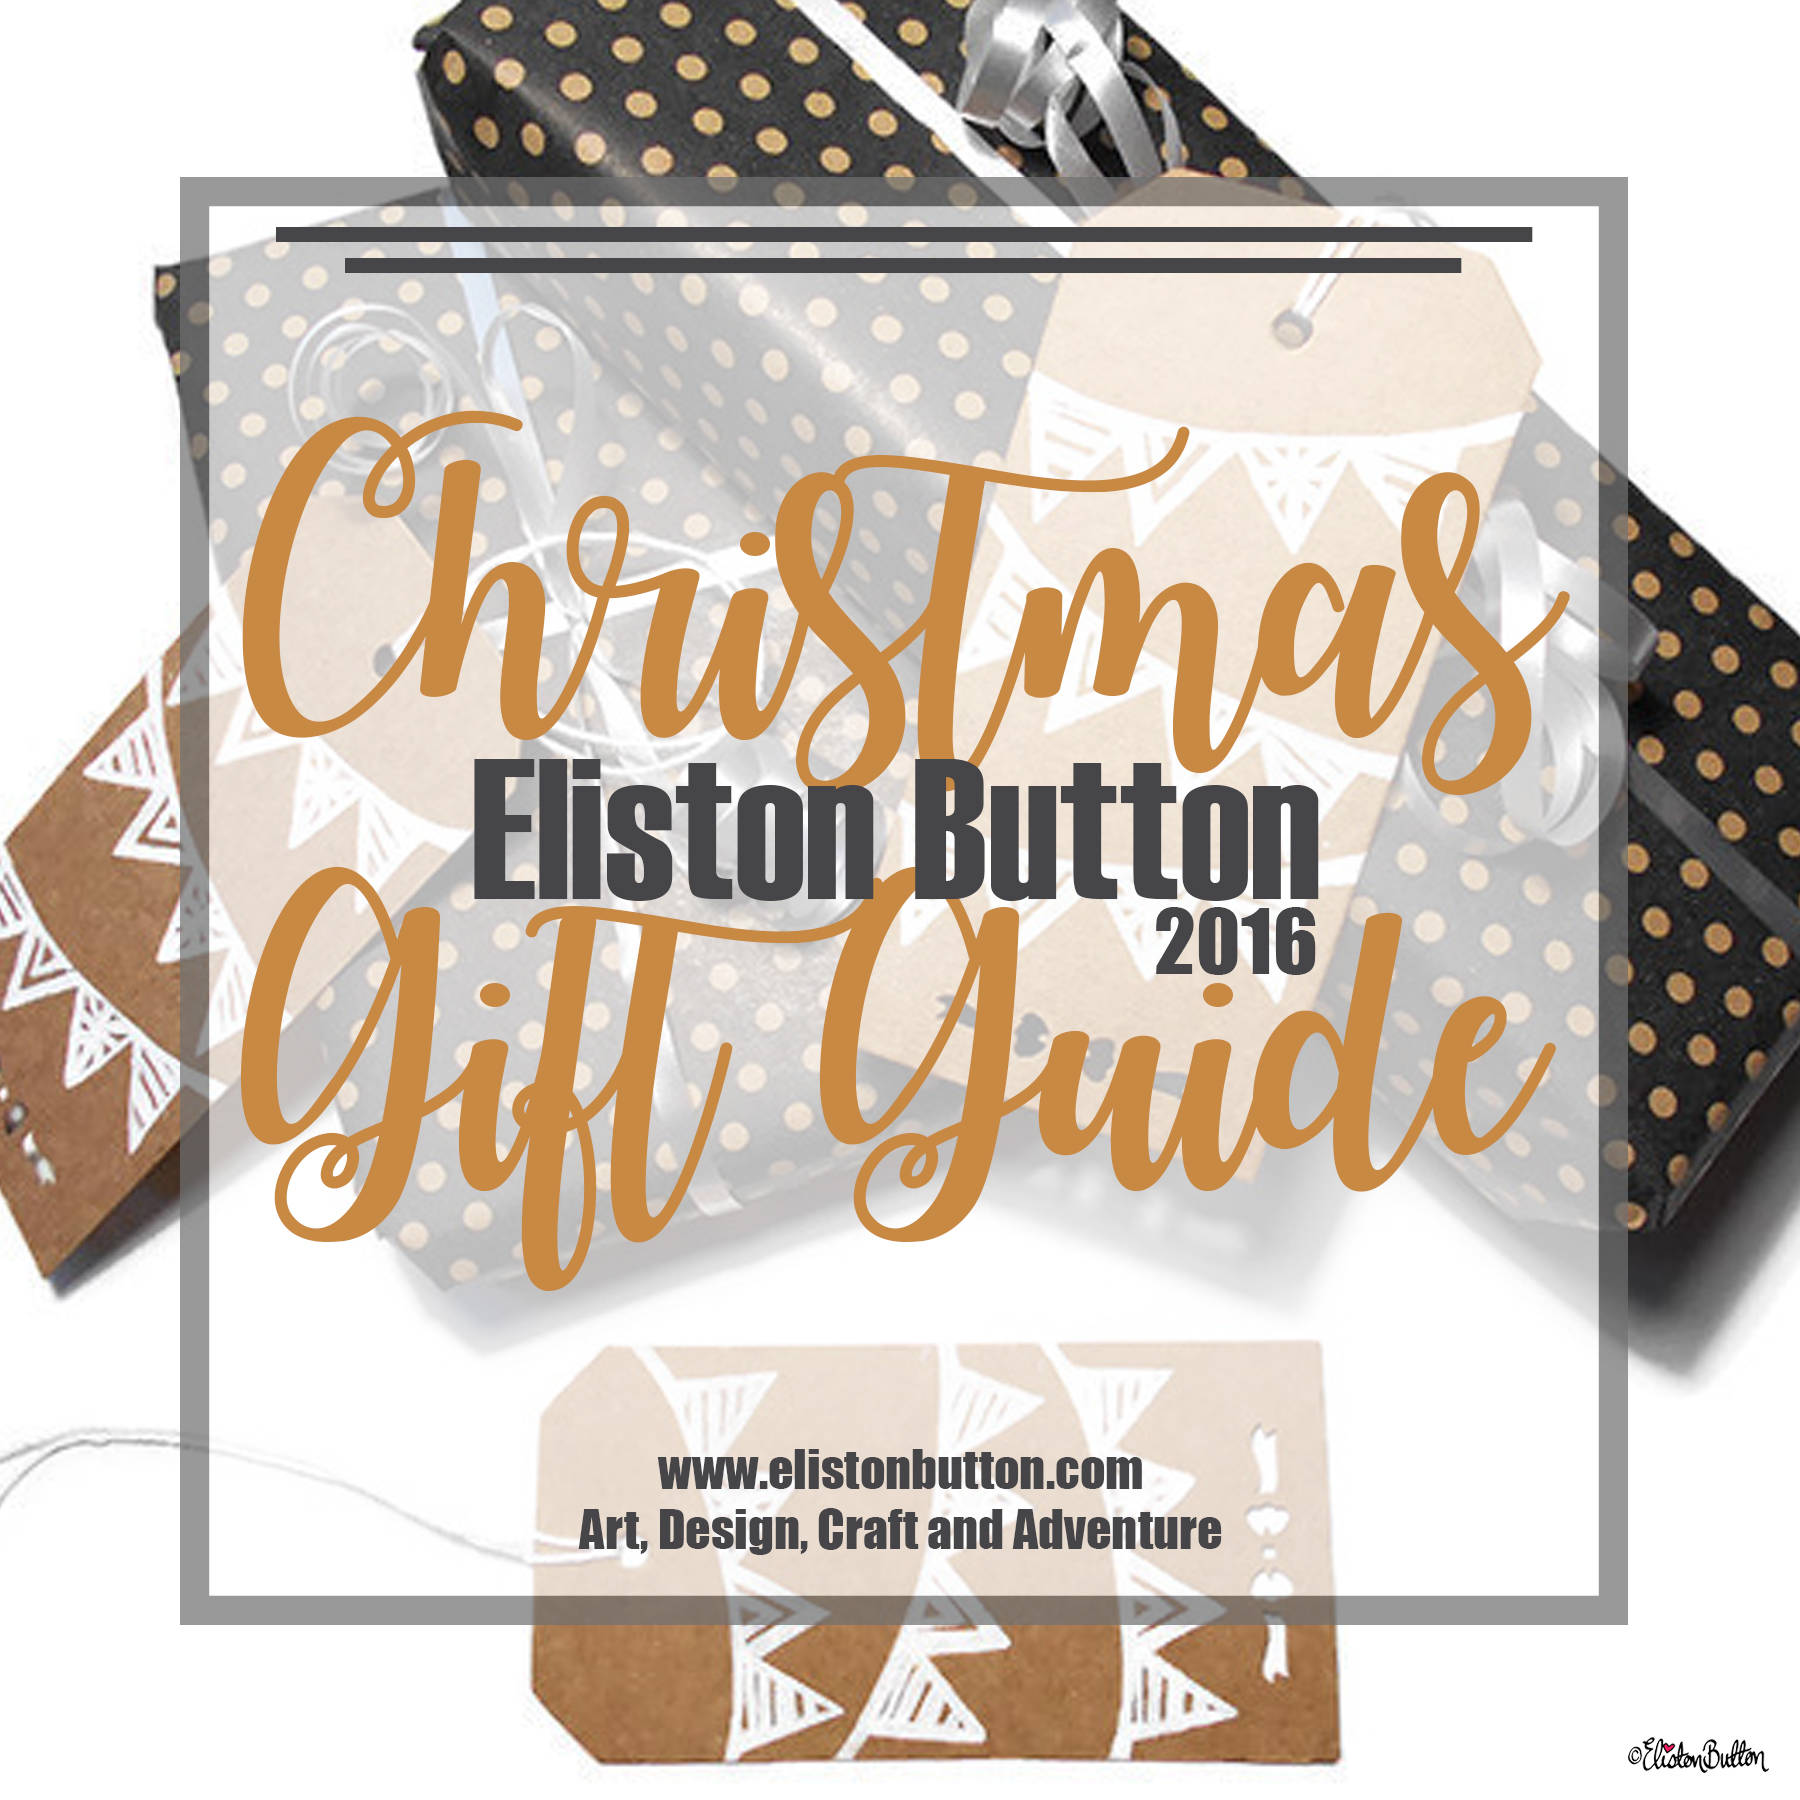 Eliston Button Etsy Shop Christmas Gift Guide 2016 - For the Love of…Winter at www.elistonbutton.com - Eliston Button - That Crafty Kid – Art, Design, Craft & Adventure.